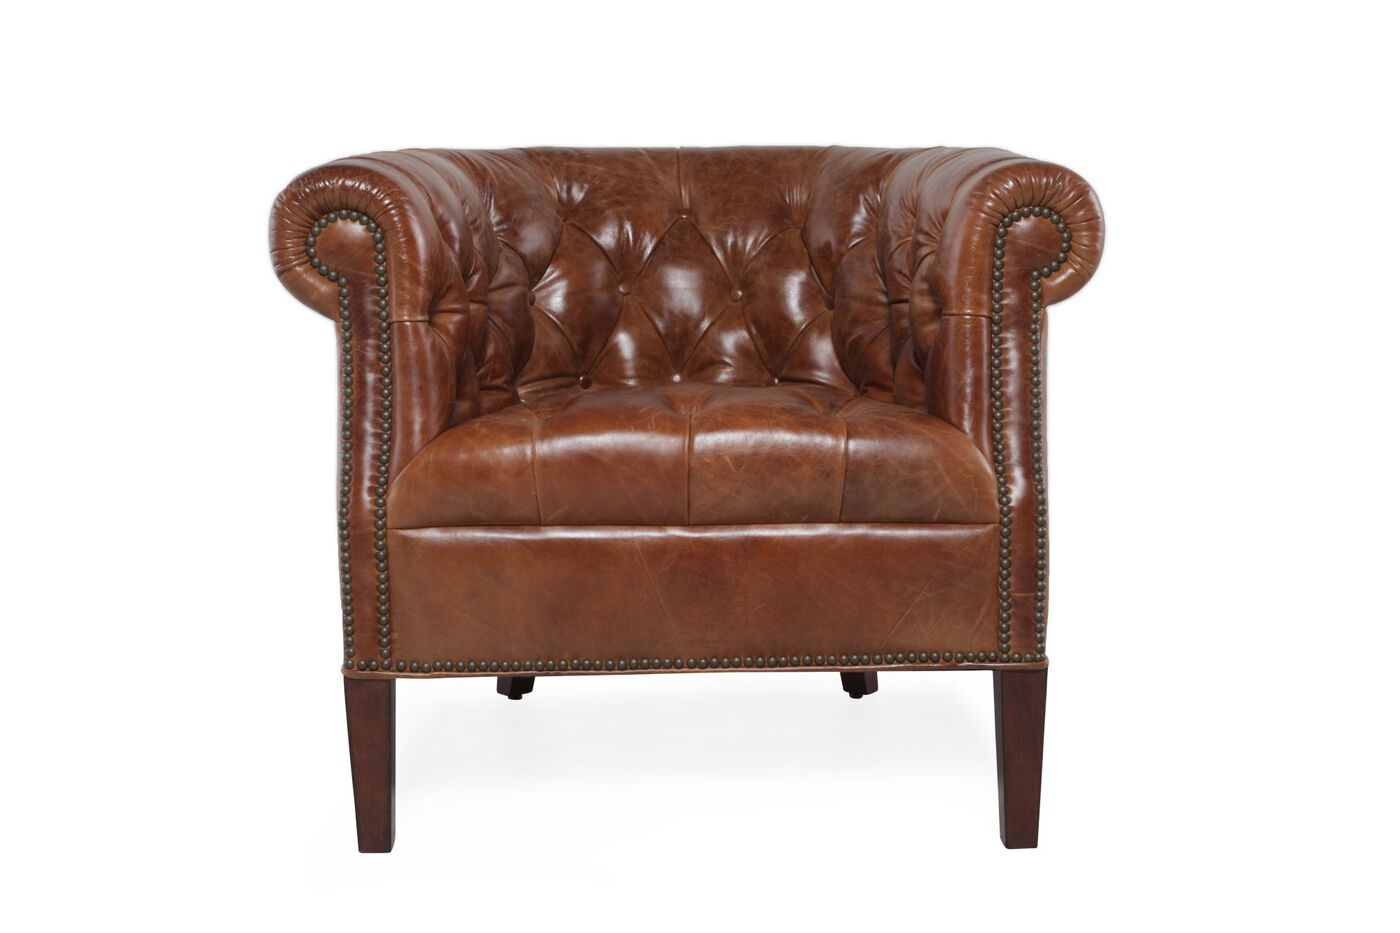 henredon leather tub chair bedroomsplendid leather desk chair furniture office sealy